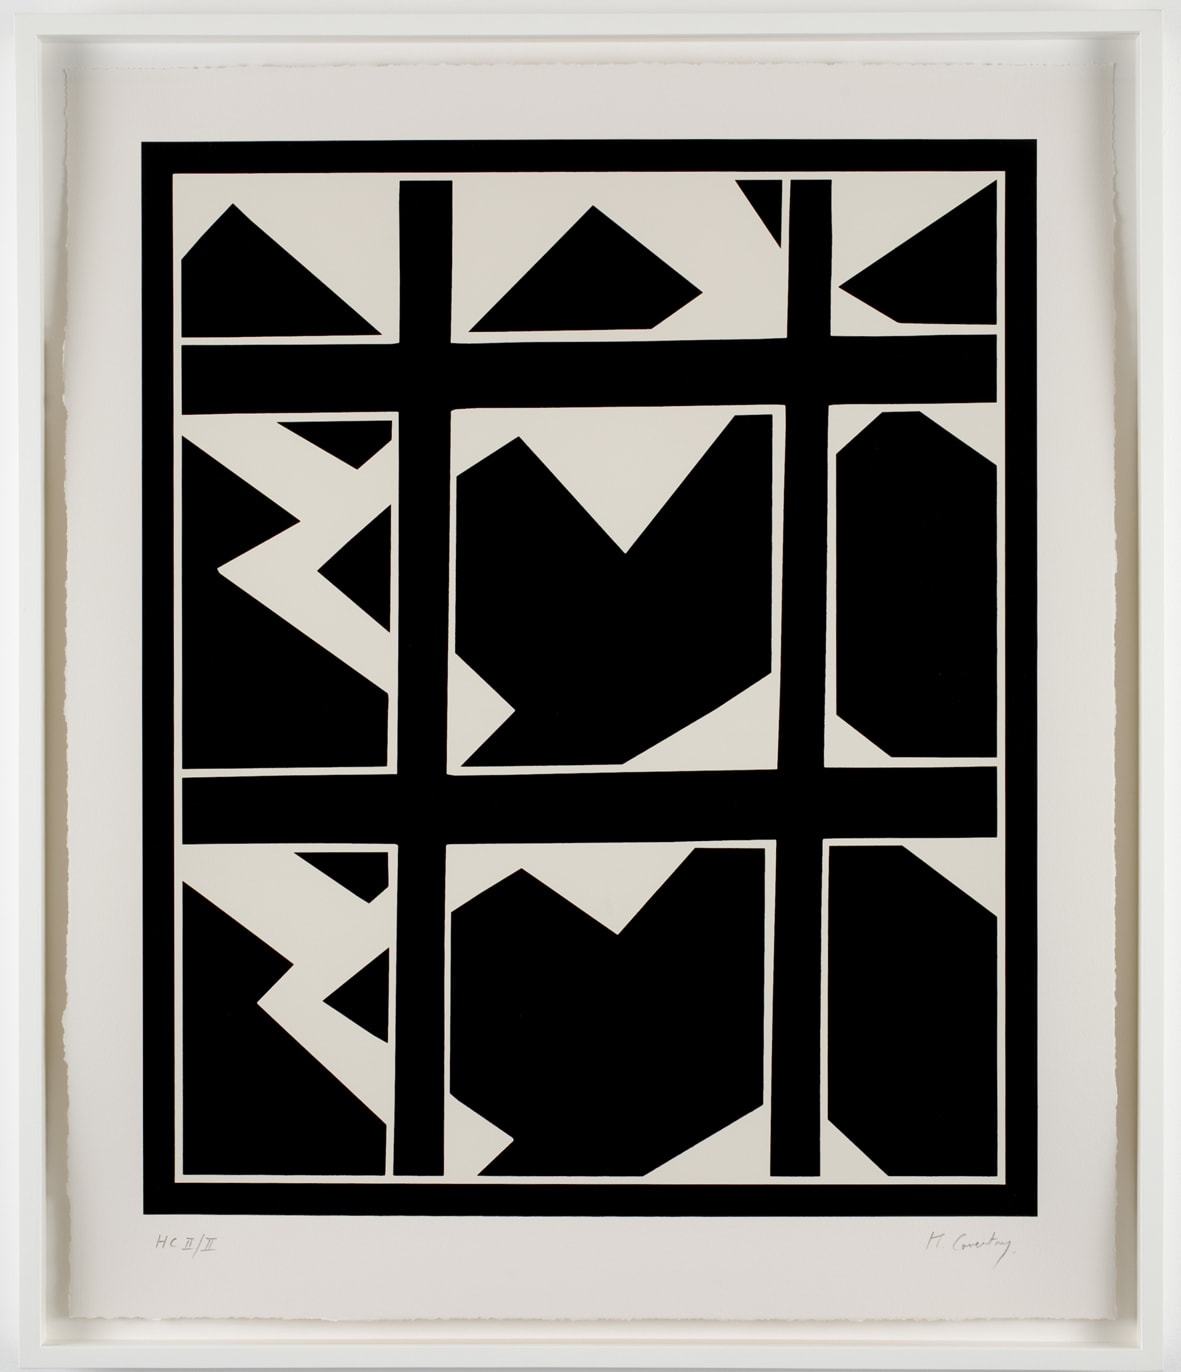 Keith Coventry Broken Window III, 2008 Silkscreen on Arches 410gsm Signed and numbered 71.4 x 59 cm Edition of 50